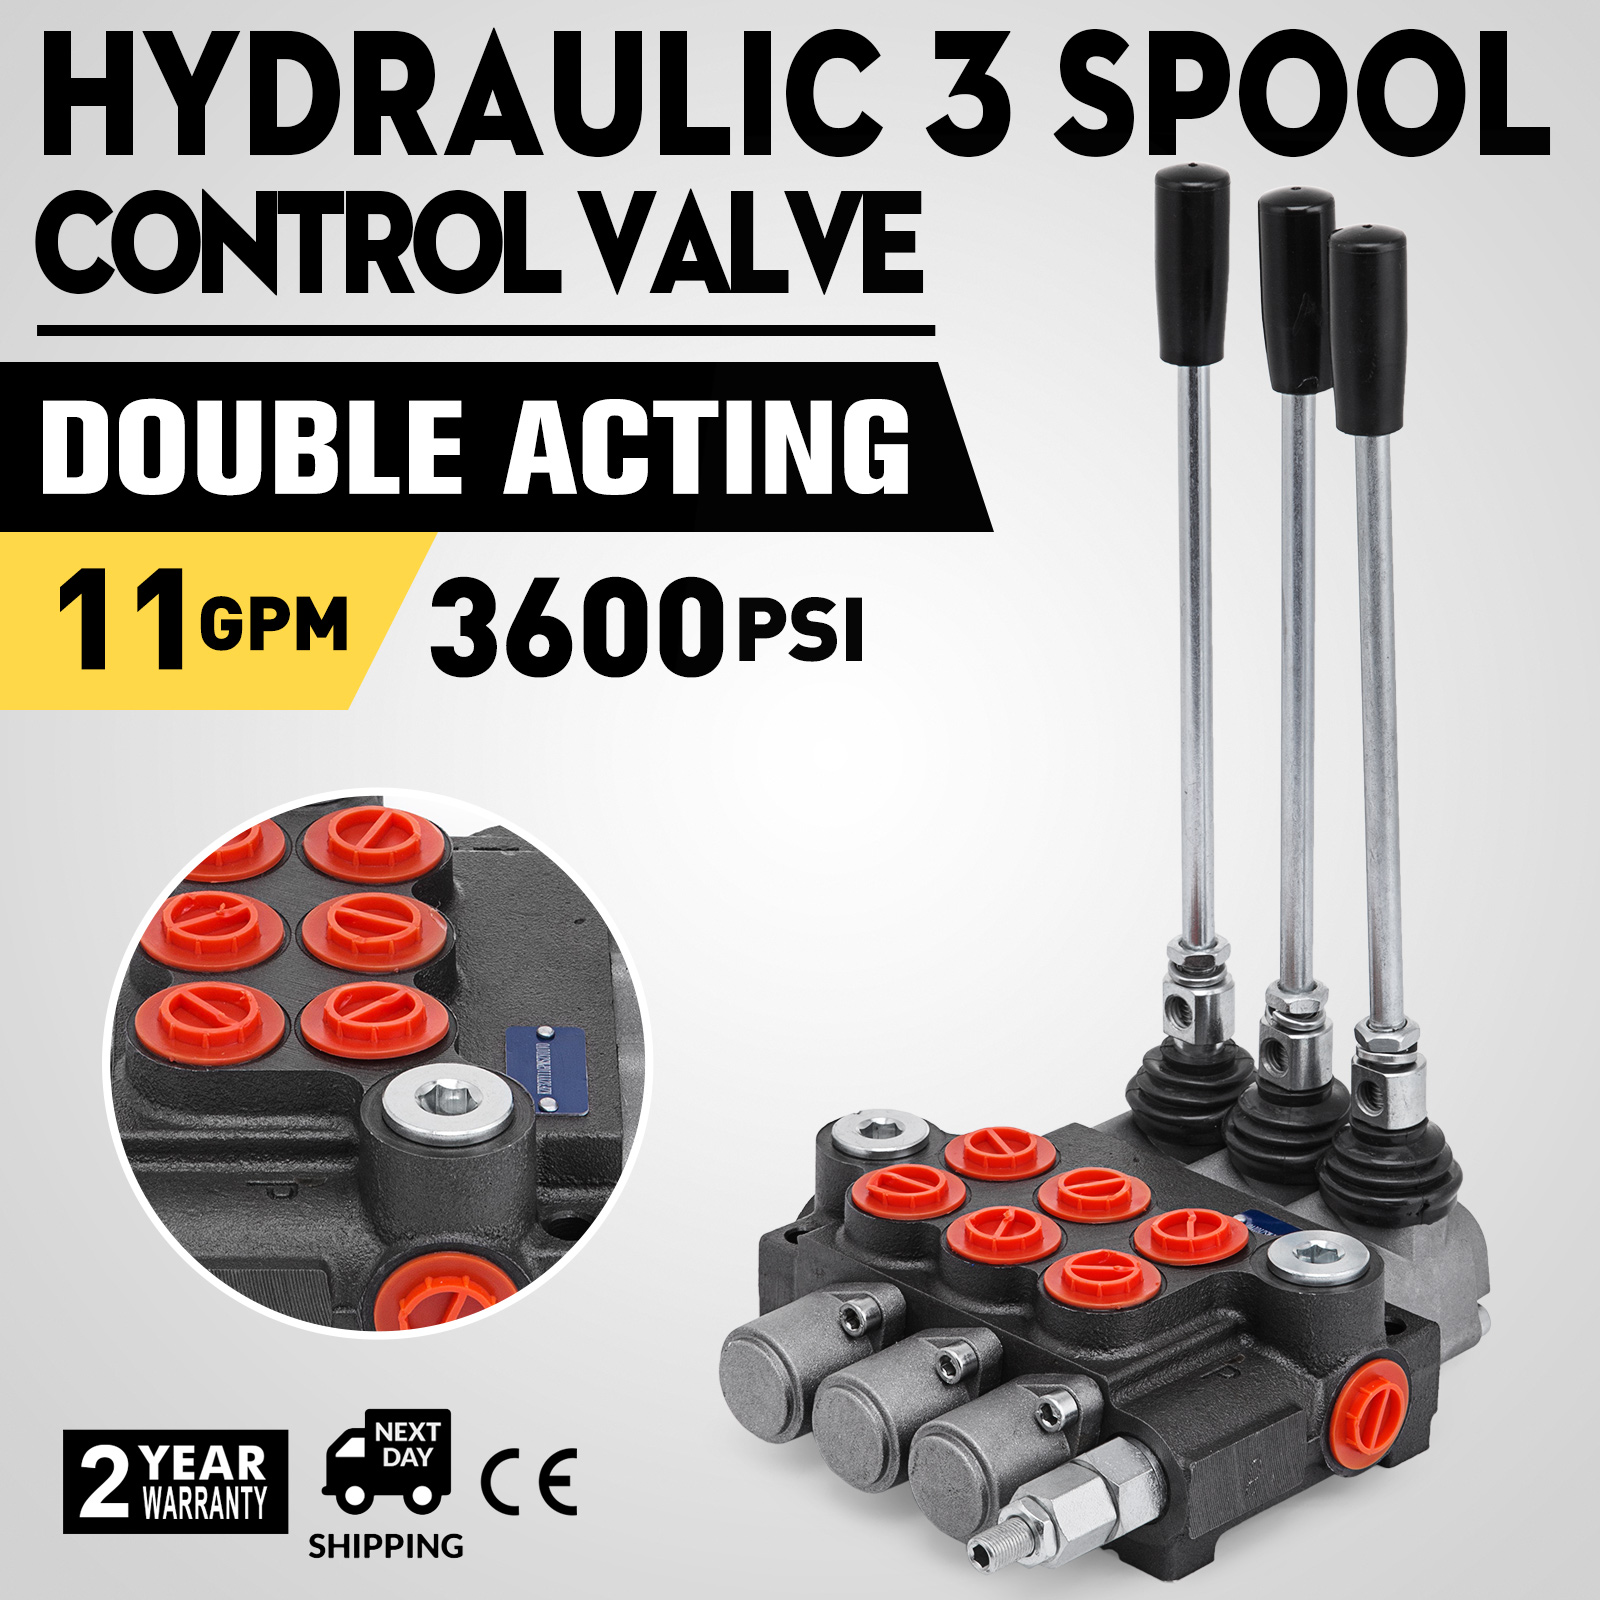 double acting cylinder spool 2 spool hydraulic directional control valve 21gpm